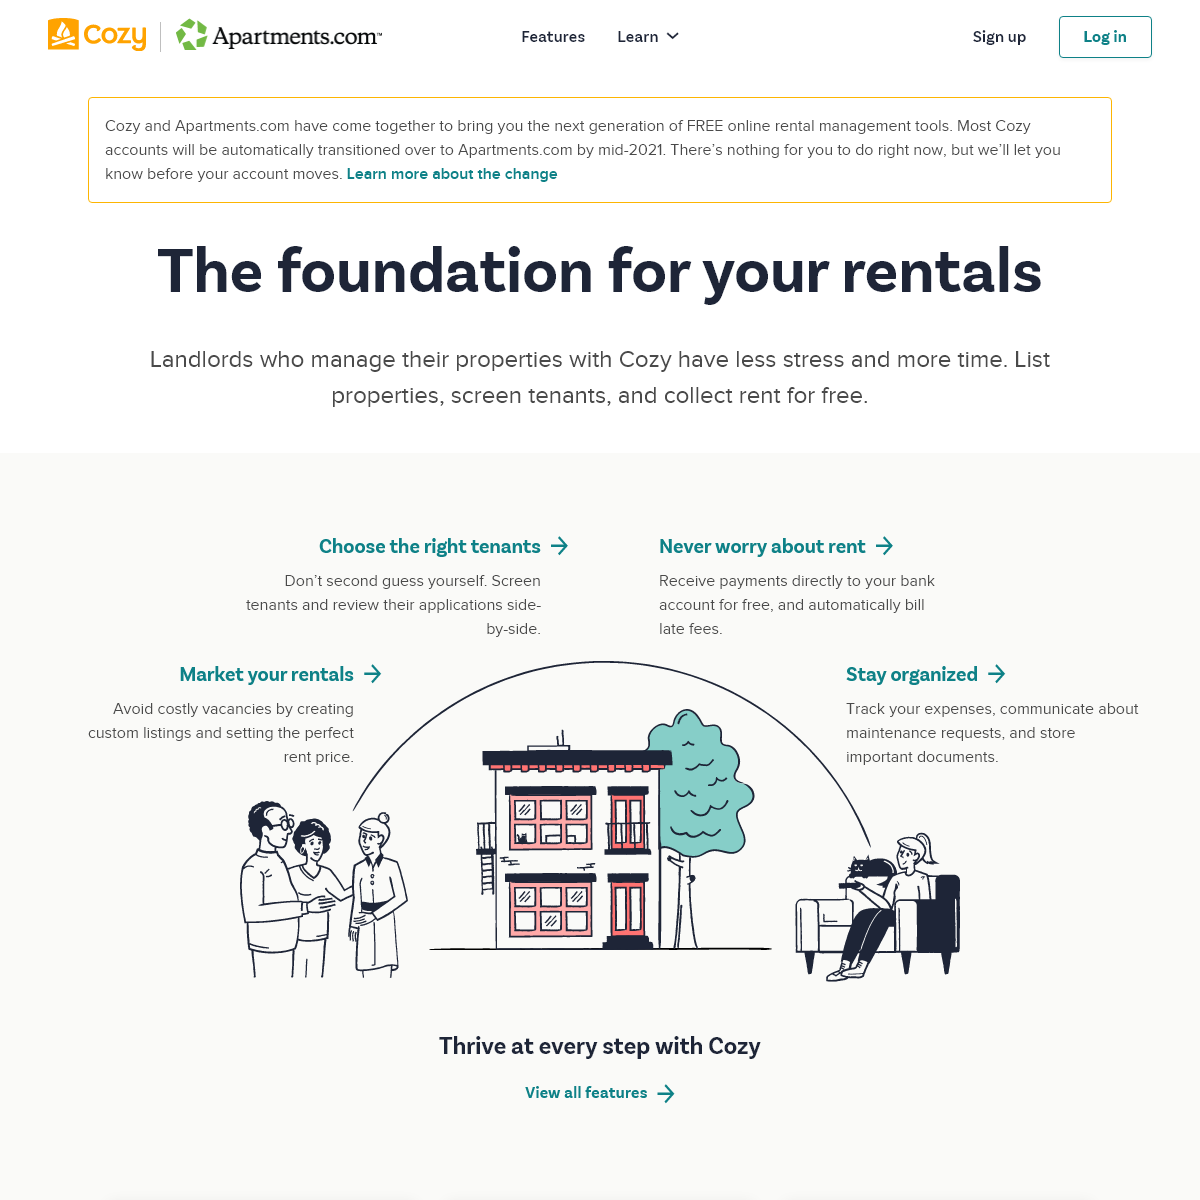 Free property management software - Online rent collection, renters insurance, tenant screening, credit and background checks -